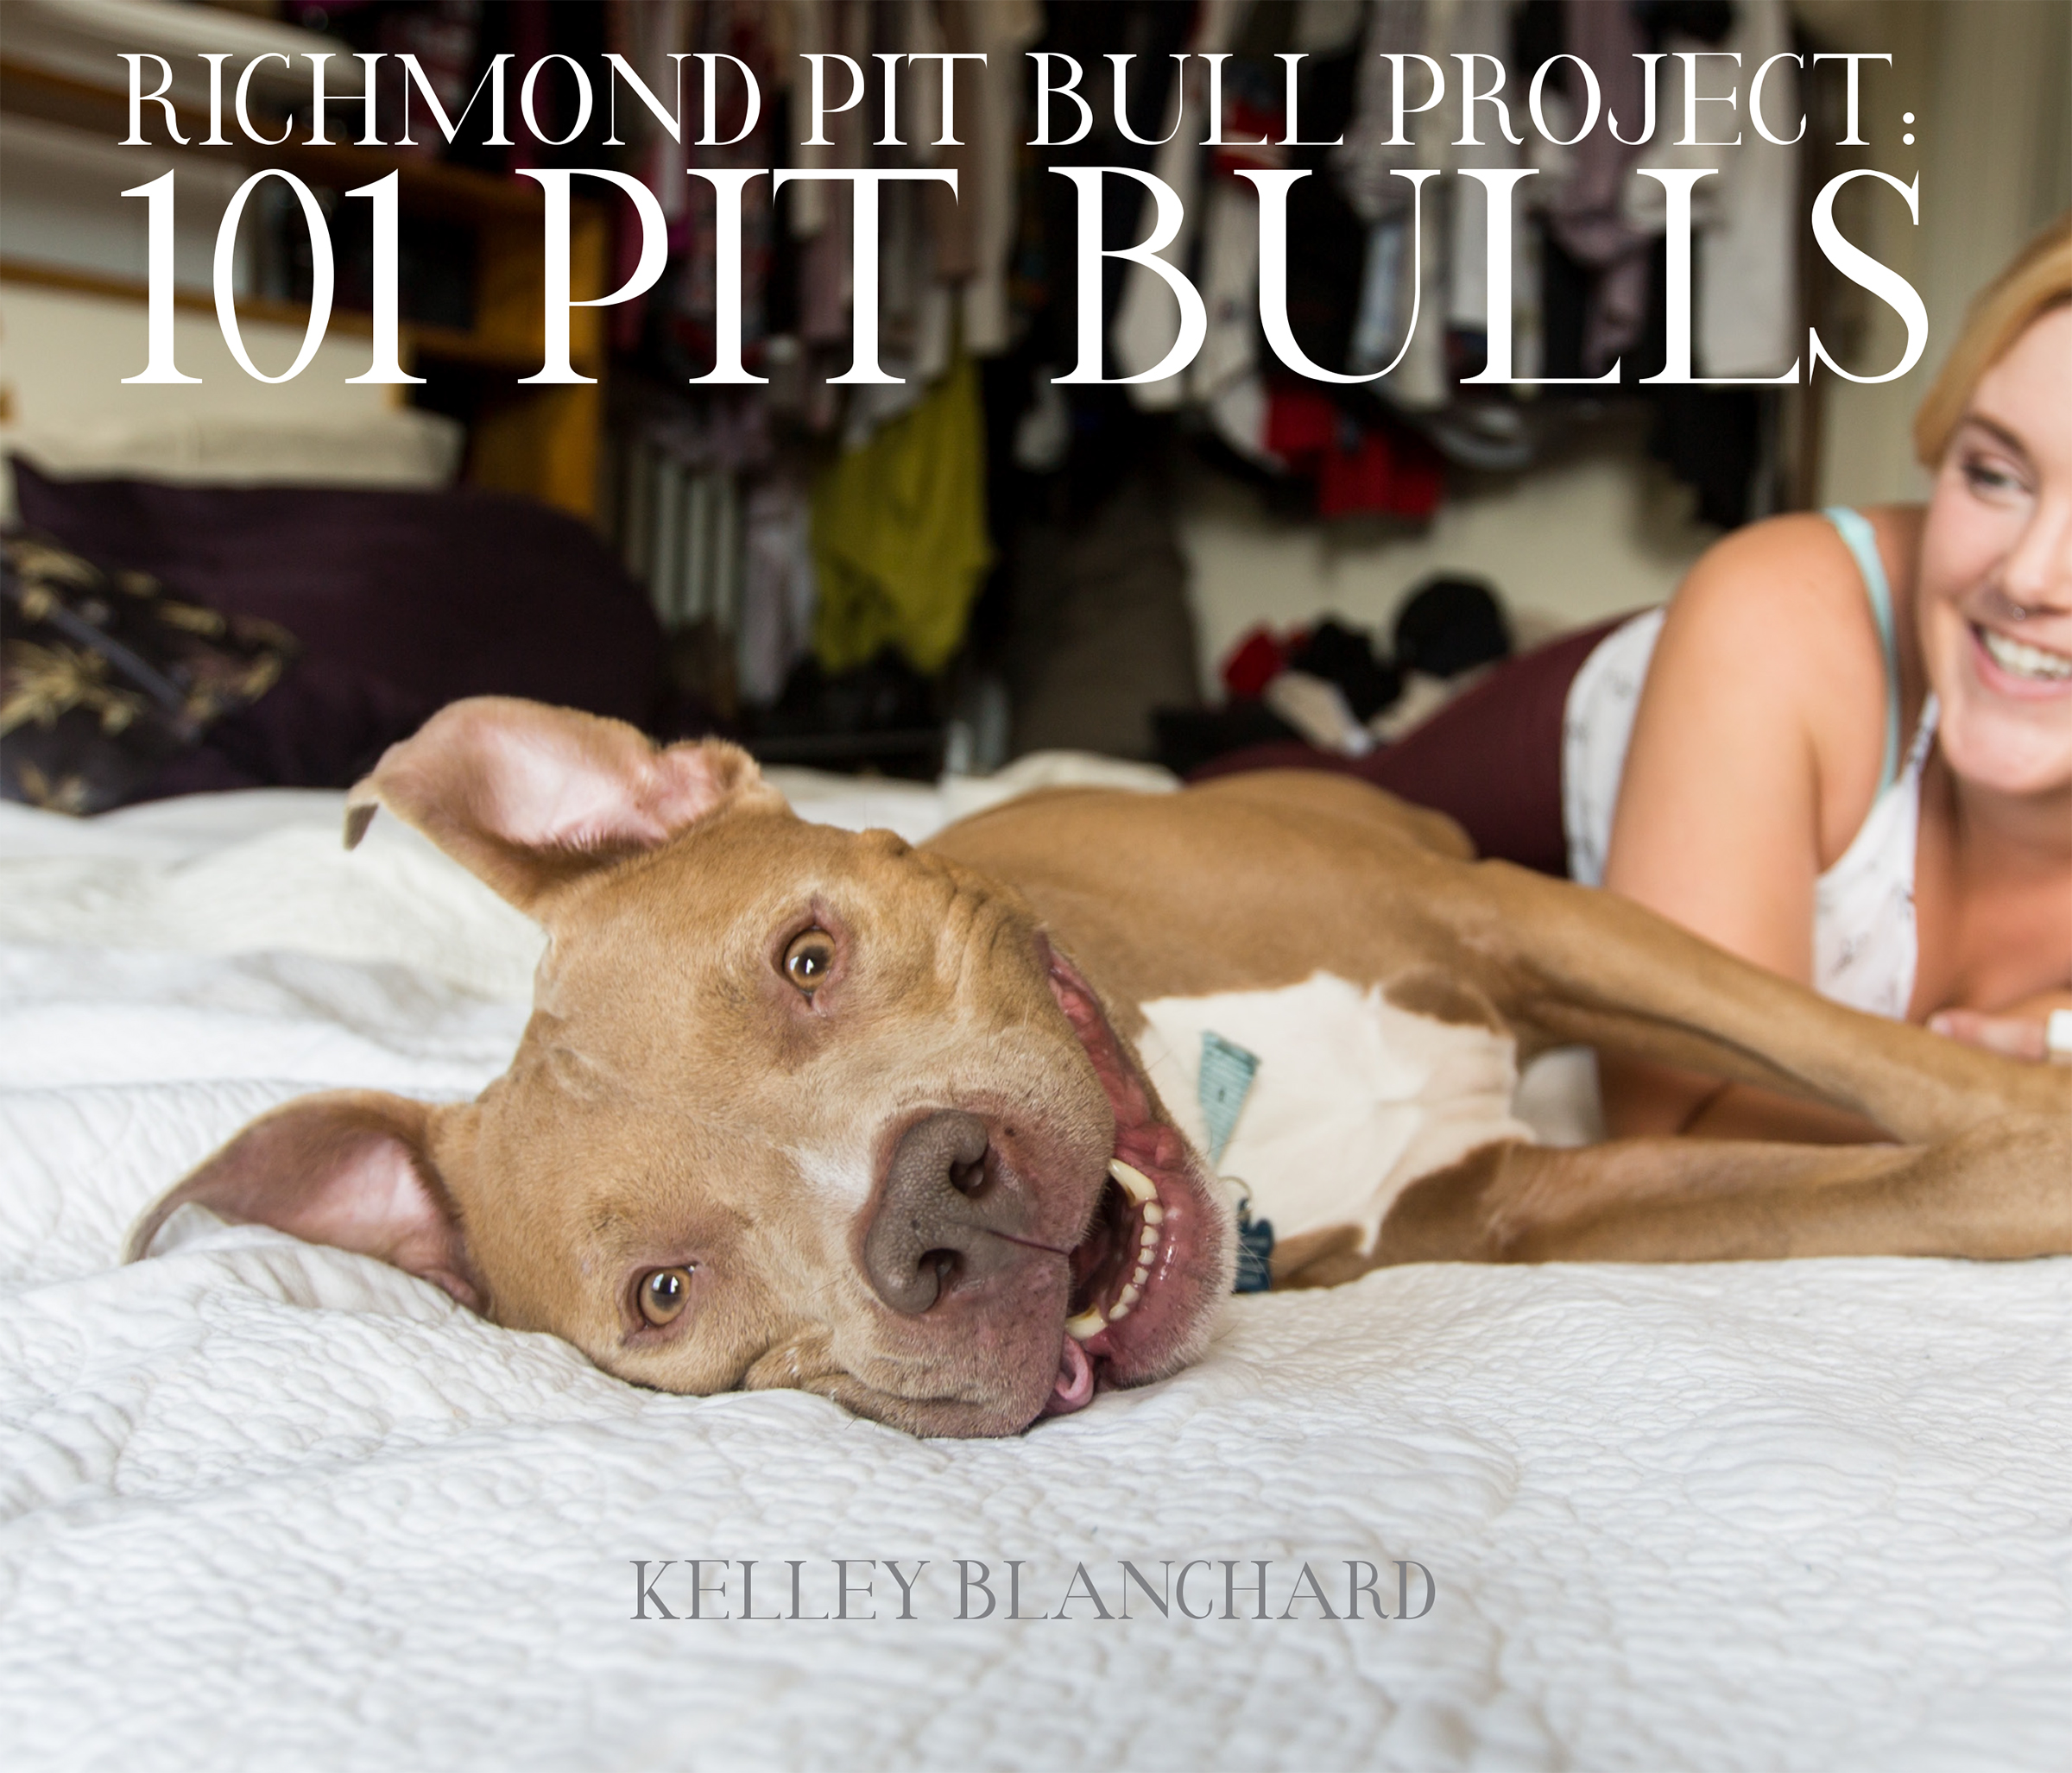 Richmond Pit Bull Project: 101 Pit Bulls - Digital Download Electronic eBook $25Volume 1 celebrates local pit bull residents and their families, rescue groups and dog friendly businesses in Richmond, Virginia.